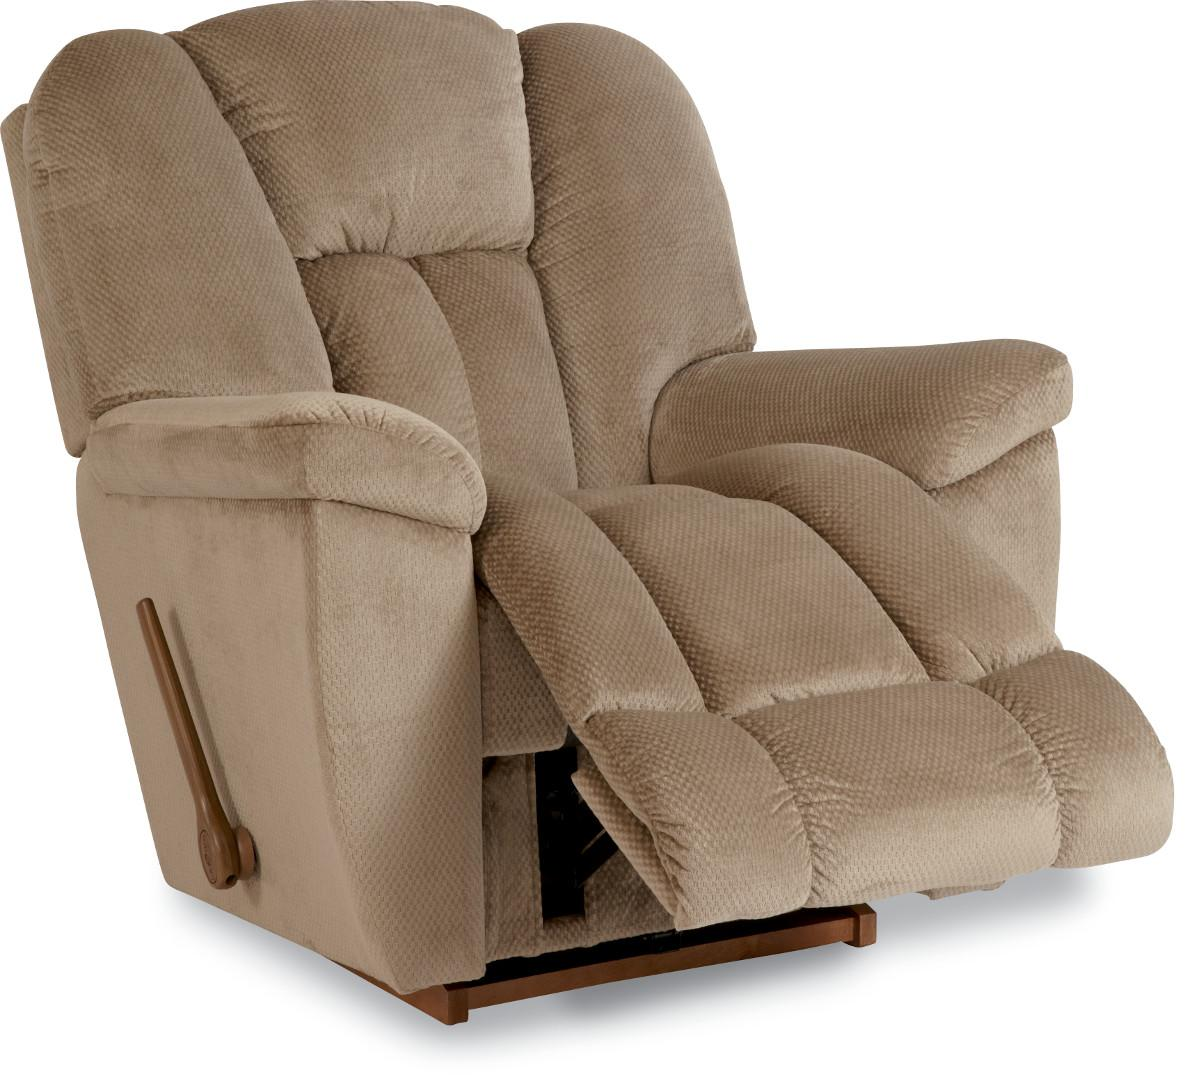 ReclinaWay Reclining Chair by LaZBoy  Wolf Furniture